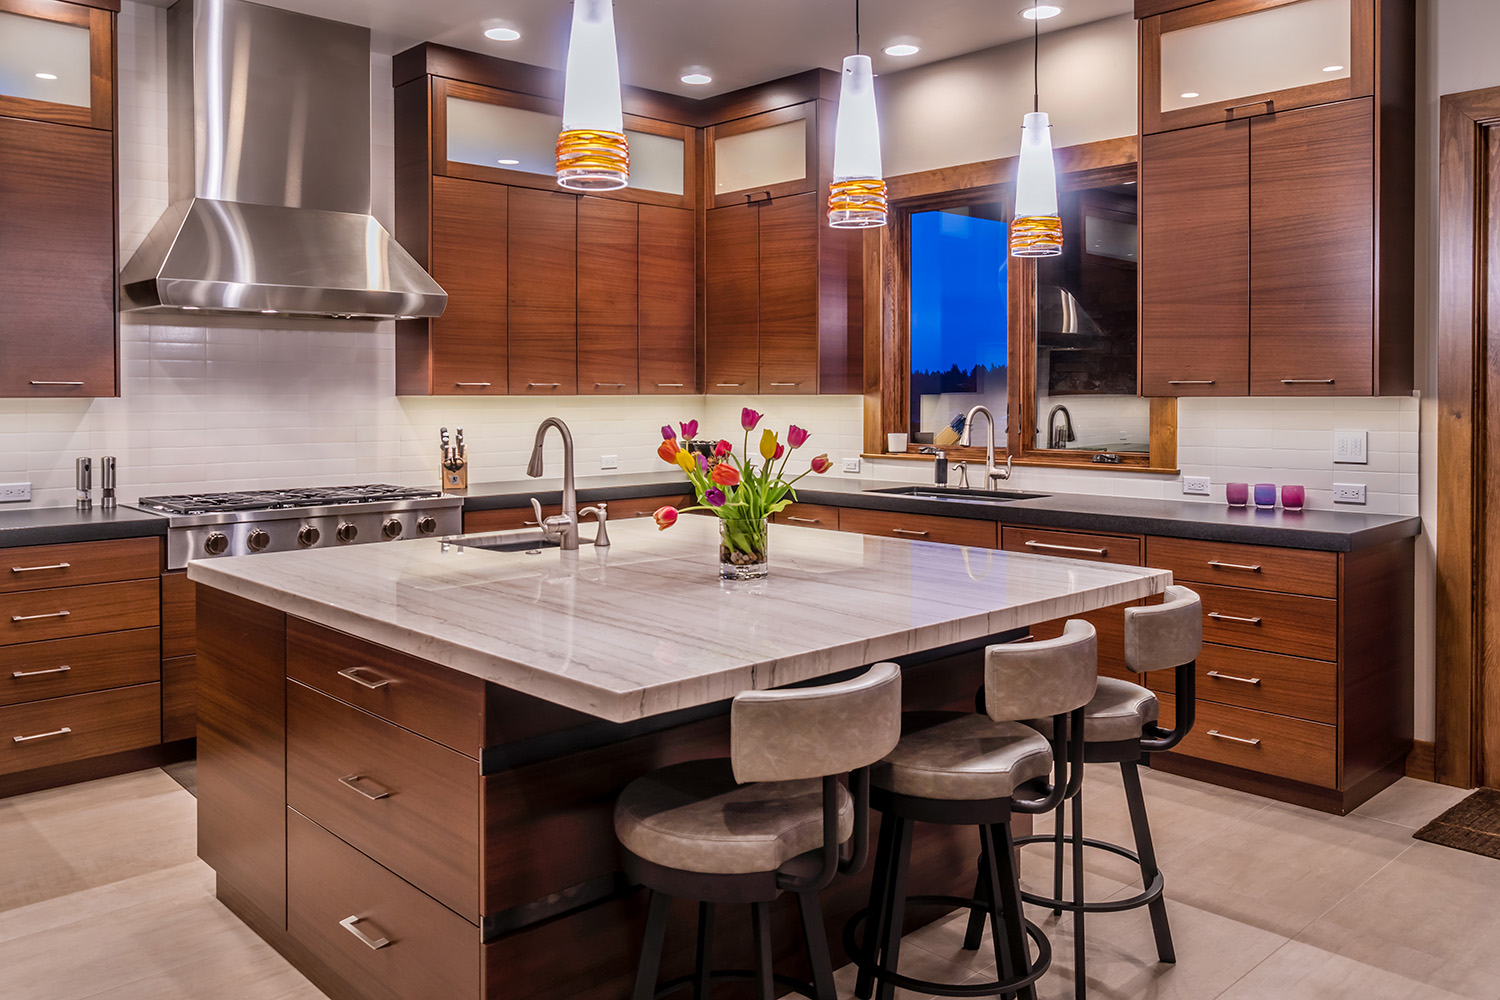 NW Modern Interior Kitchen Design